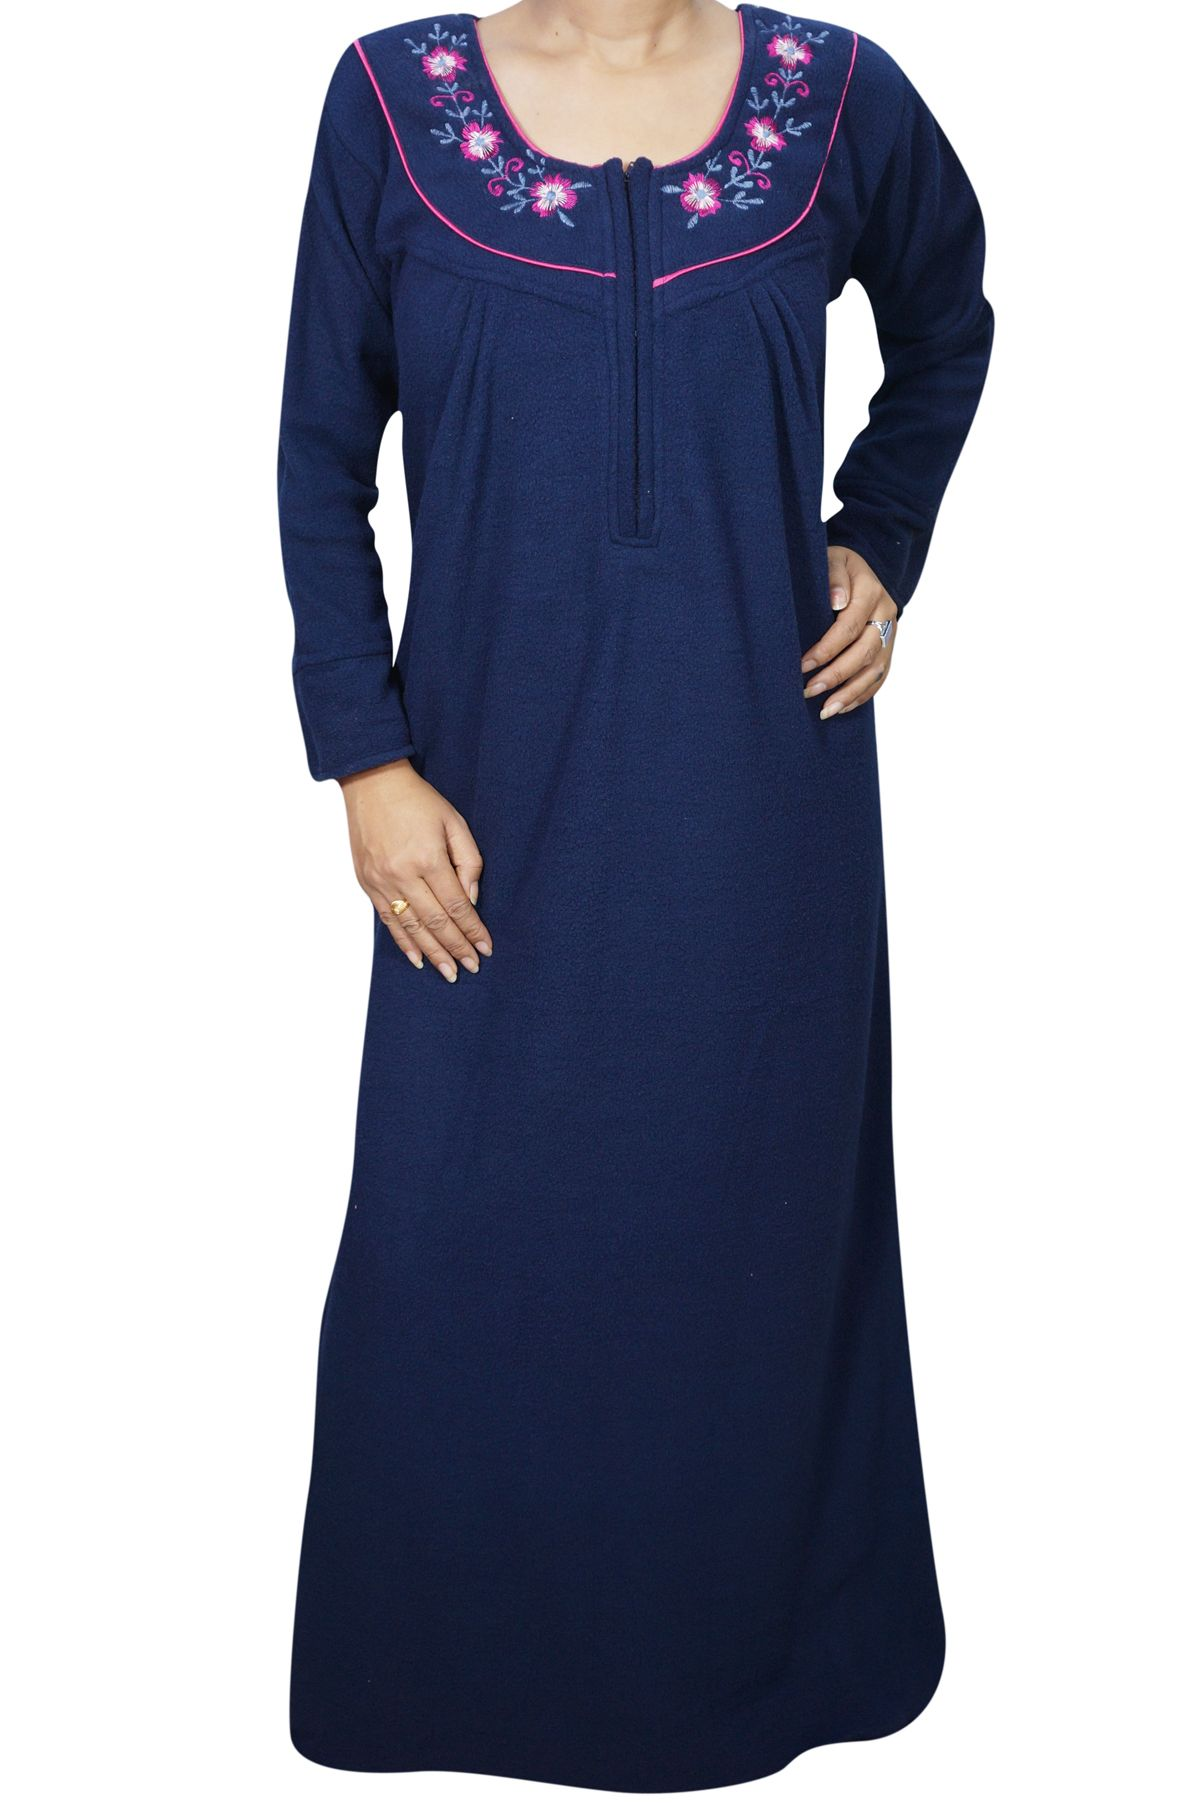 Enjoy your sleep time with this Solid winter Full Sleeve night wear ...